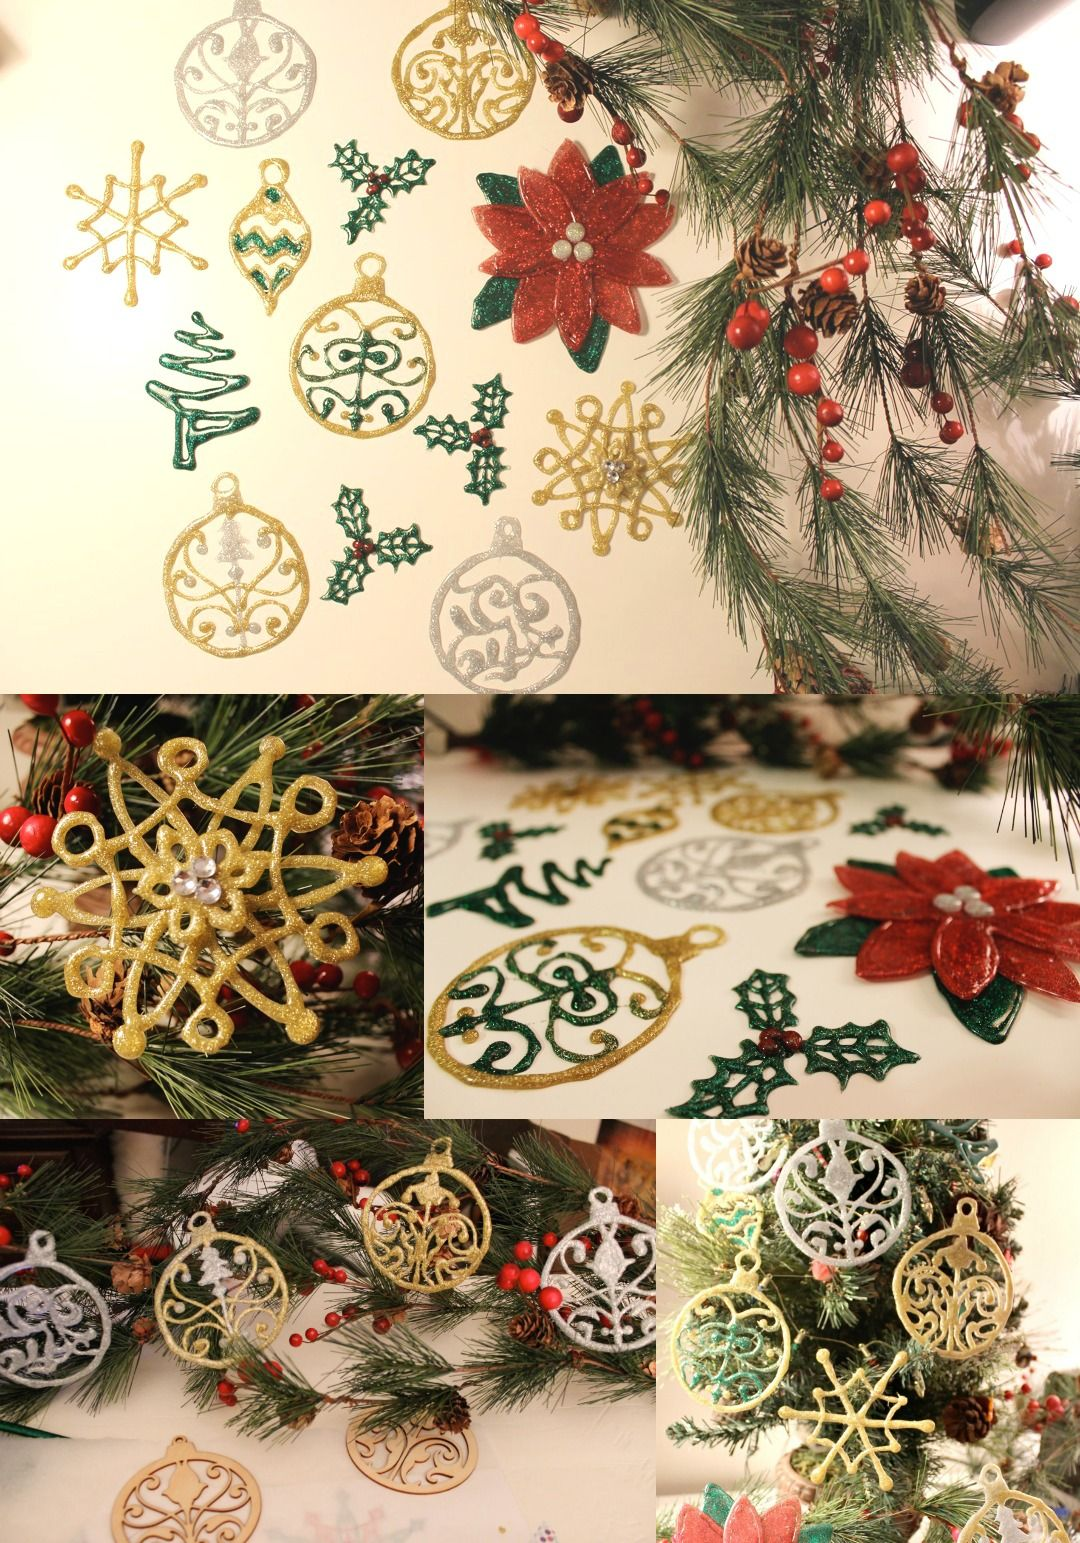 Pin On Christmas Ornament Ideas